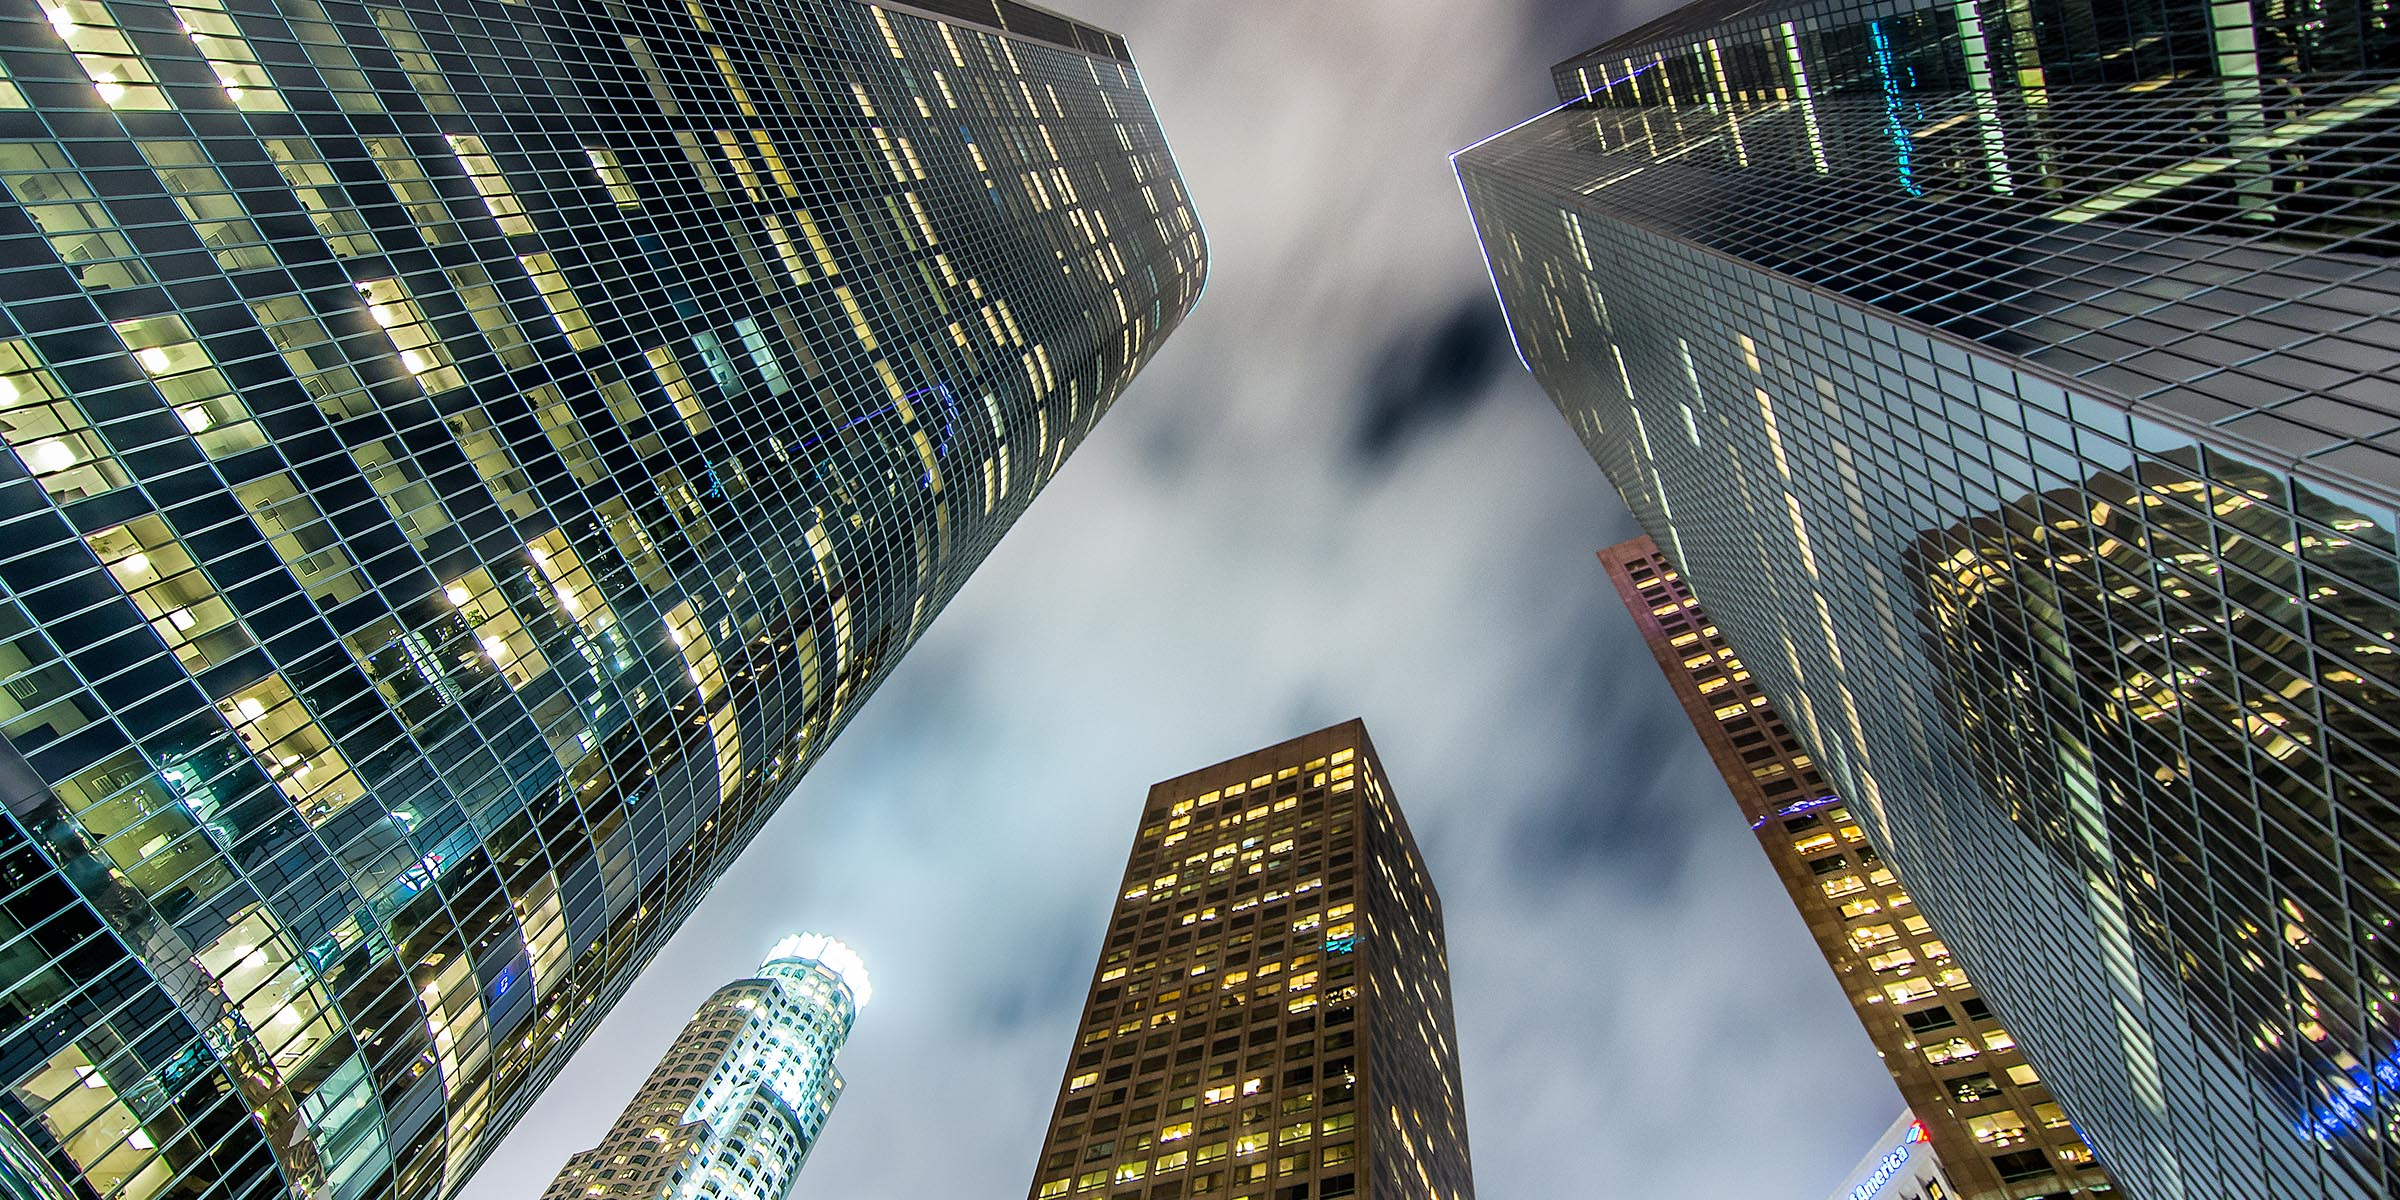 Photograph of Downtown in Los Angeles, California by Brent Goldman Photography